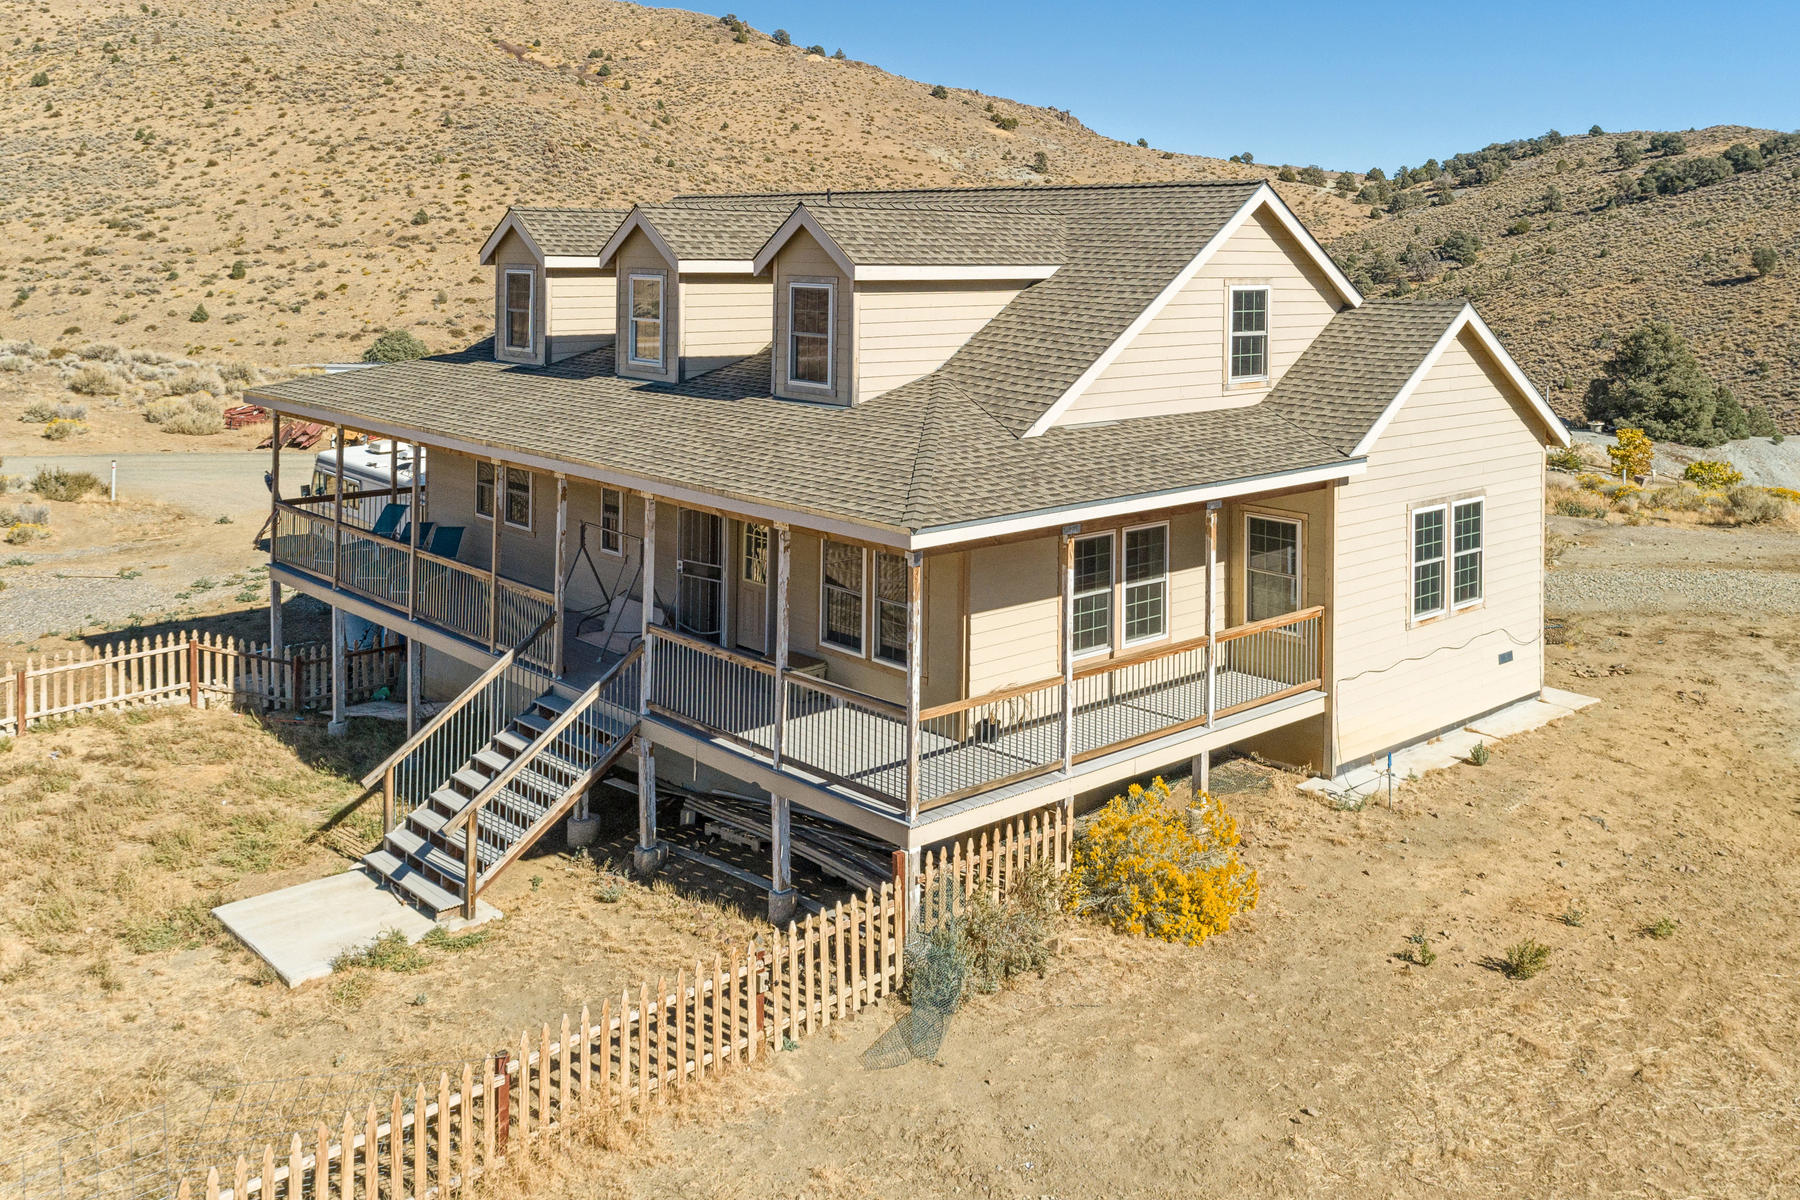 Single Family Homes 为 销售 在 2850 Slippery Gulch, Virginia City, Nevada 2850 Slippery Gulch 弗吉尼亚城, 内华达州 89440 美国